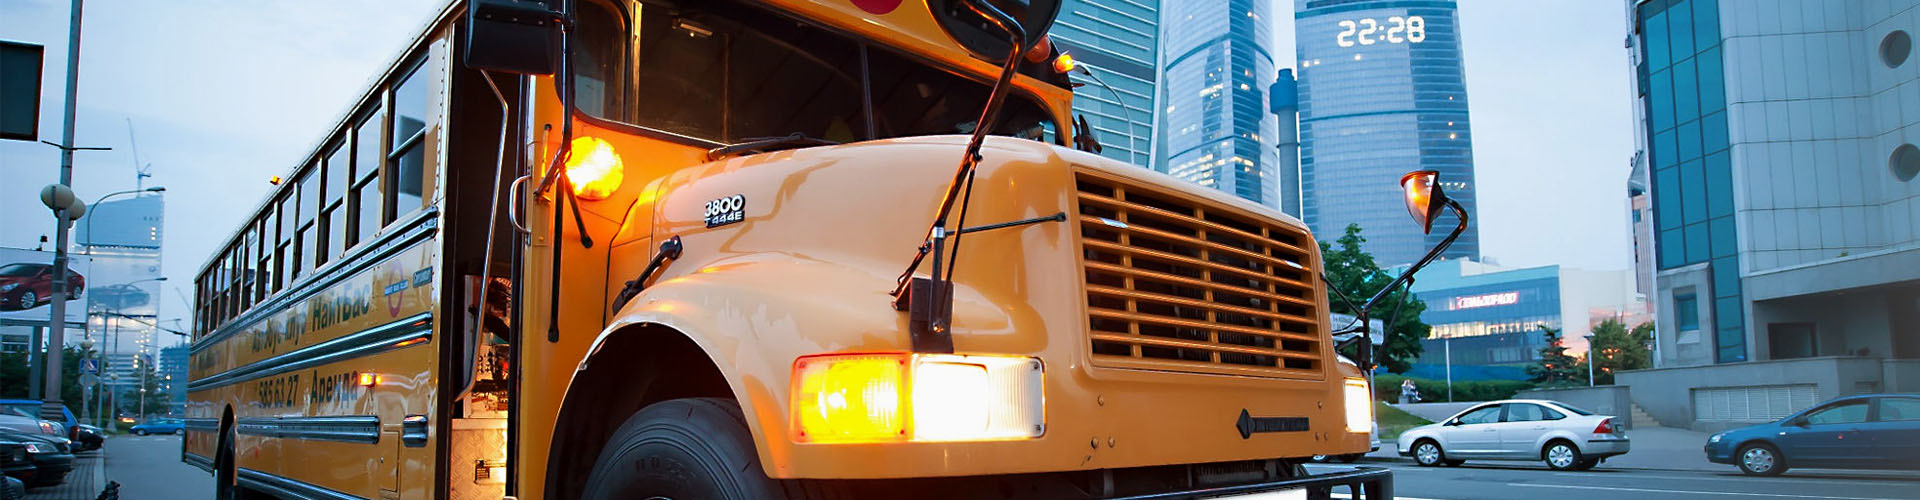 School bus monitoring solution